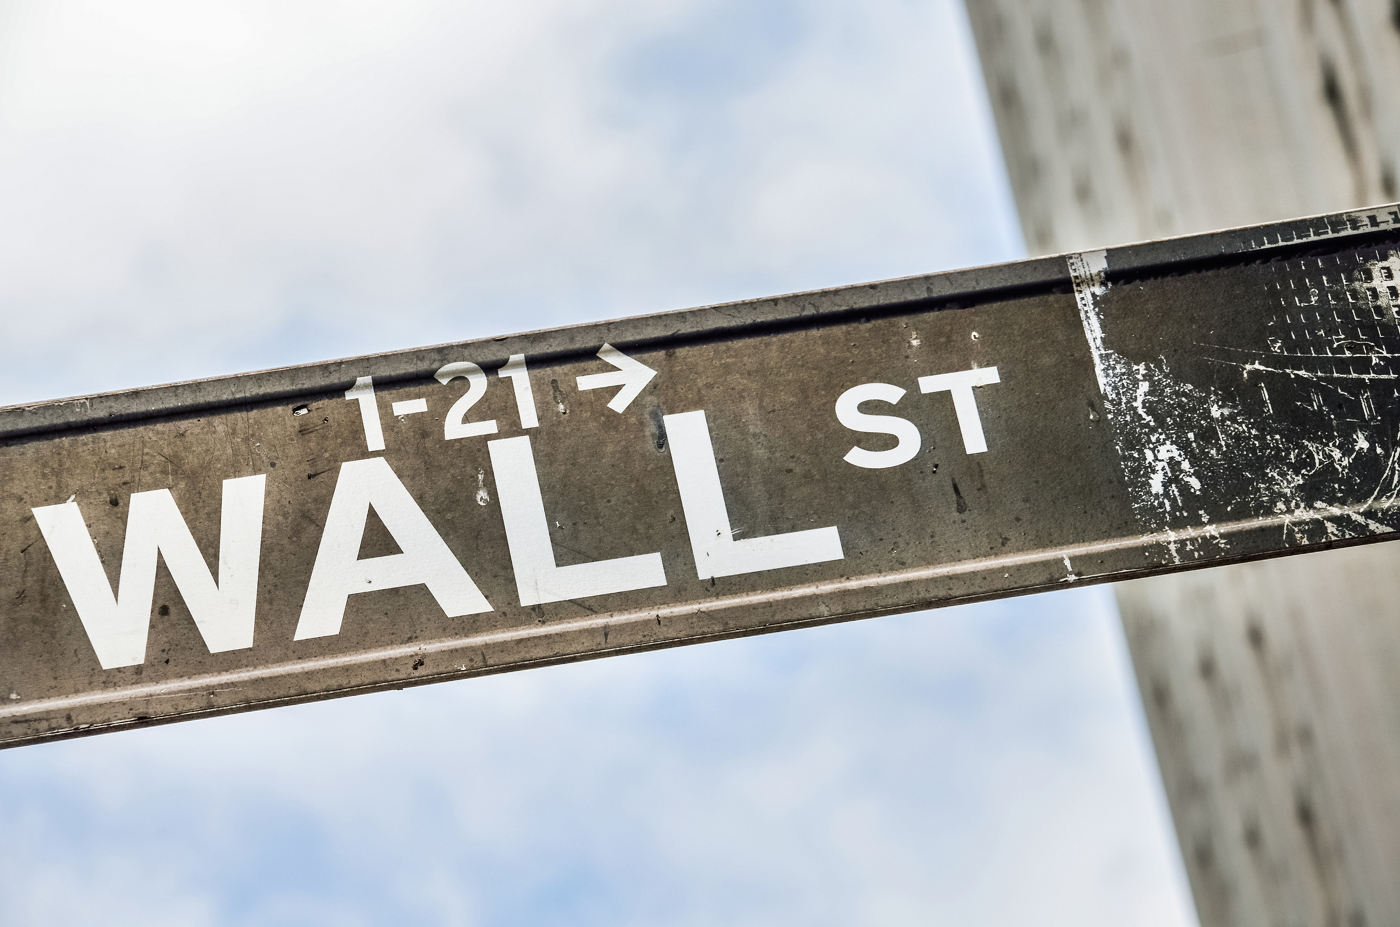 Wall Street, Stock Market, Stock Exchange, Trading, Investing